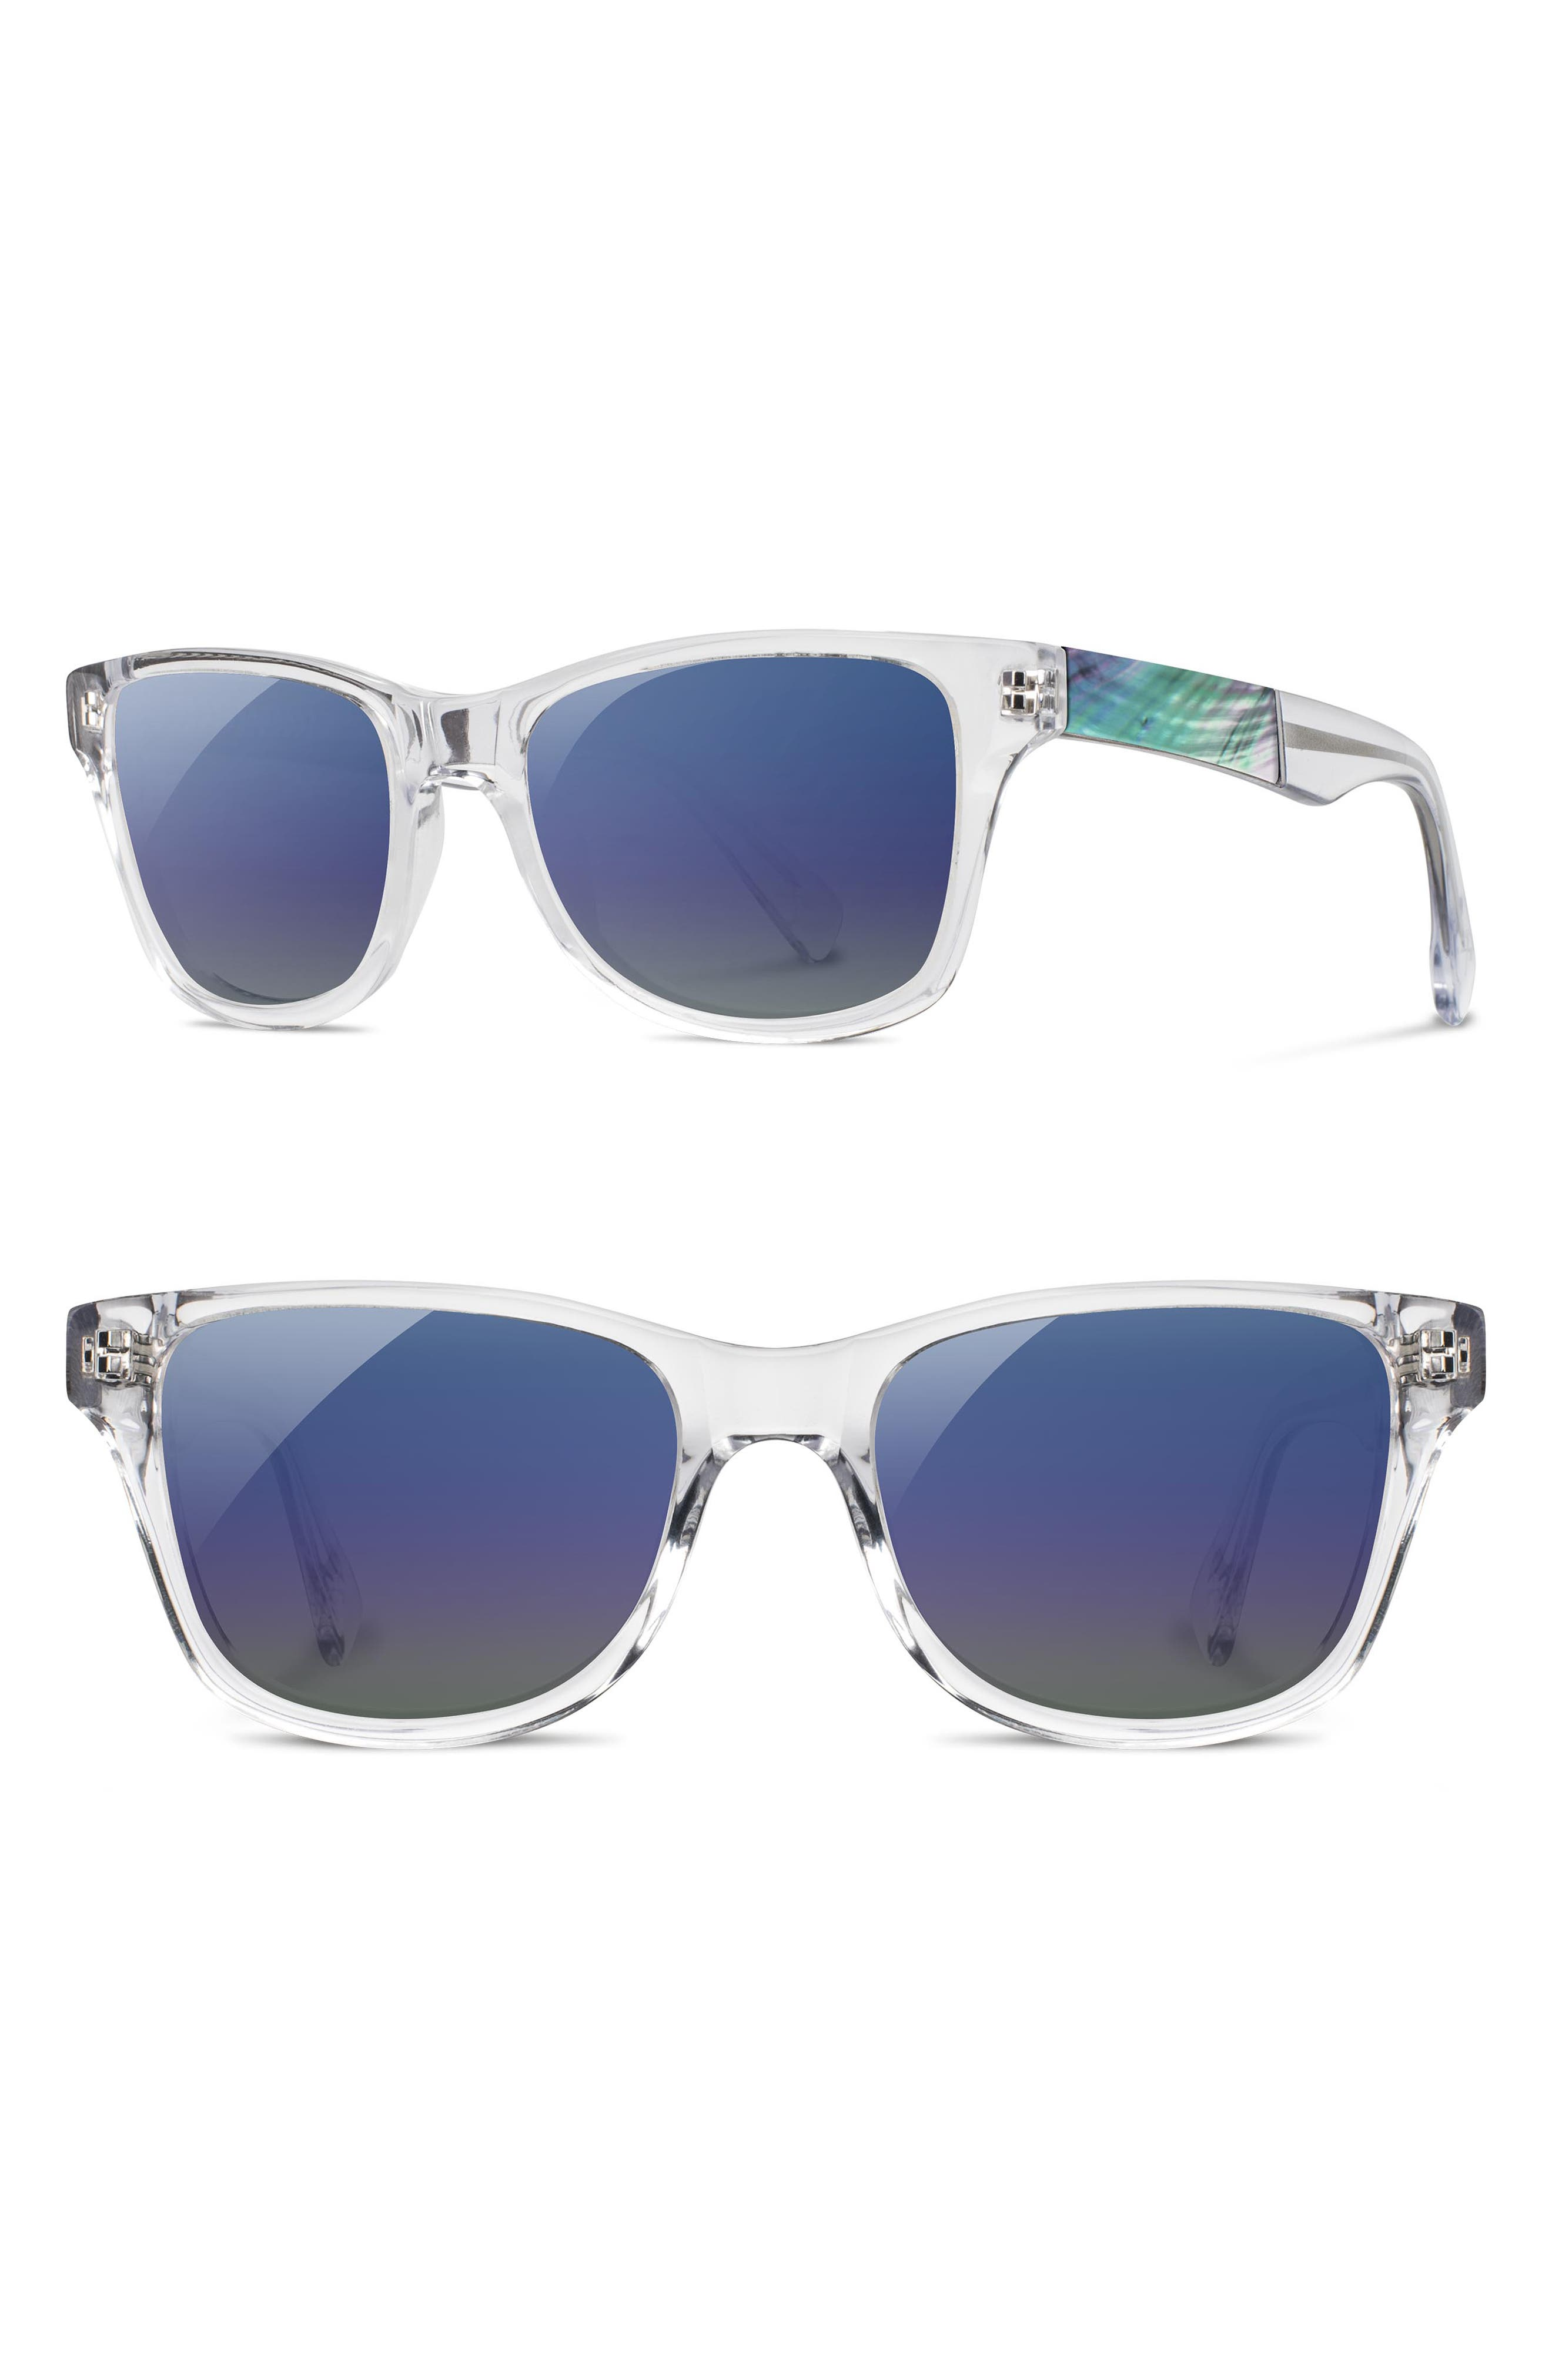 Polarized Wood Inlay Sunglasses,                         Main,                         color, CRYSTAL/ ABALONE SHELL/ BLUE